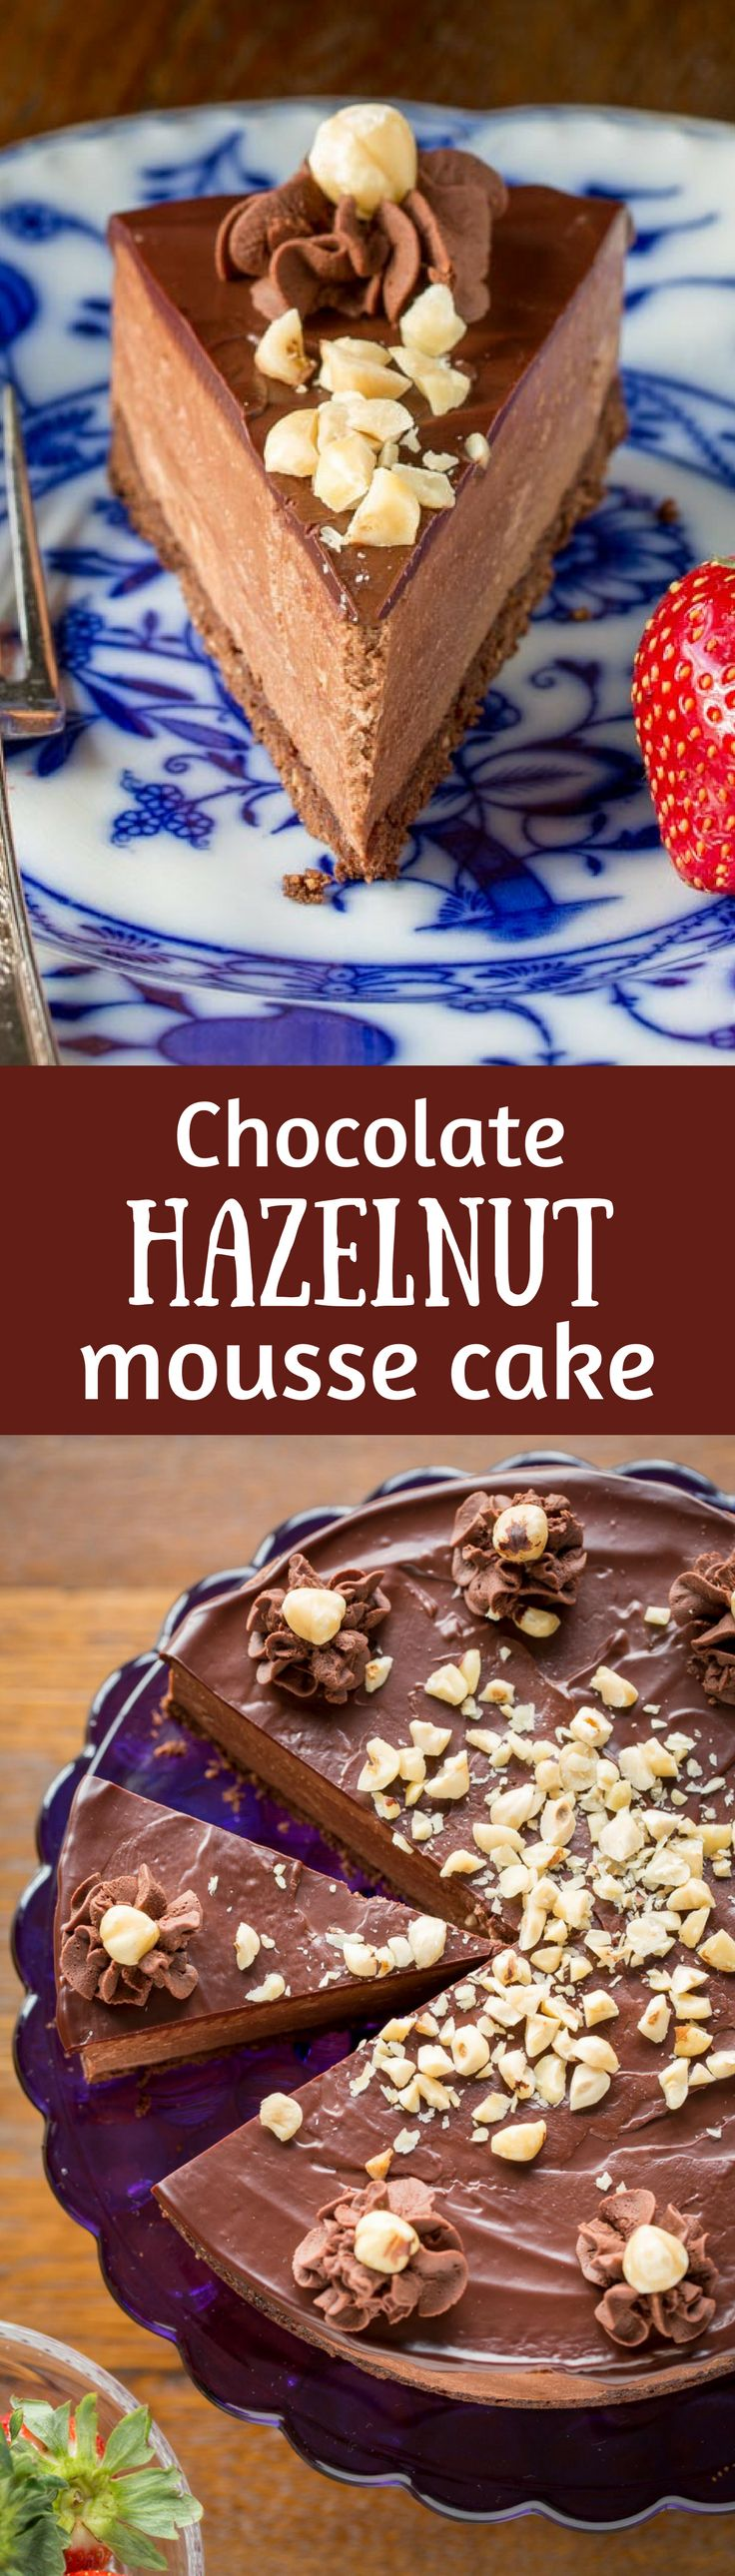 Chocolate Hazelnut Mousse Cake ~ a light and fluffy Nutella chocolate mousse spread over a chocolate hazelnut shortbread crust, topped with a simple chocolate ganache and garnished with chopped toasted hazelnuts.